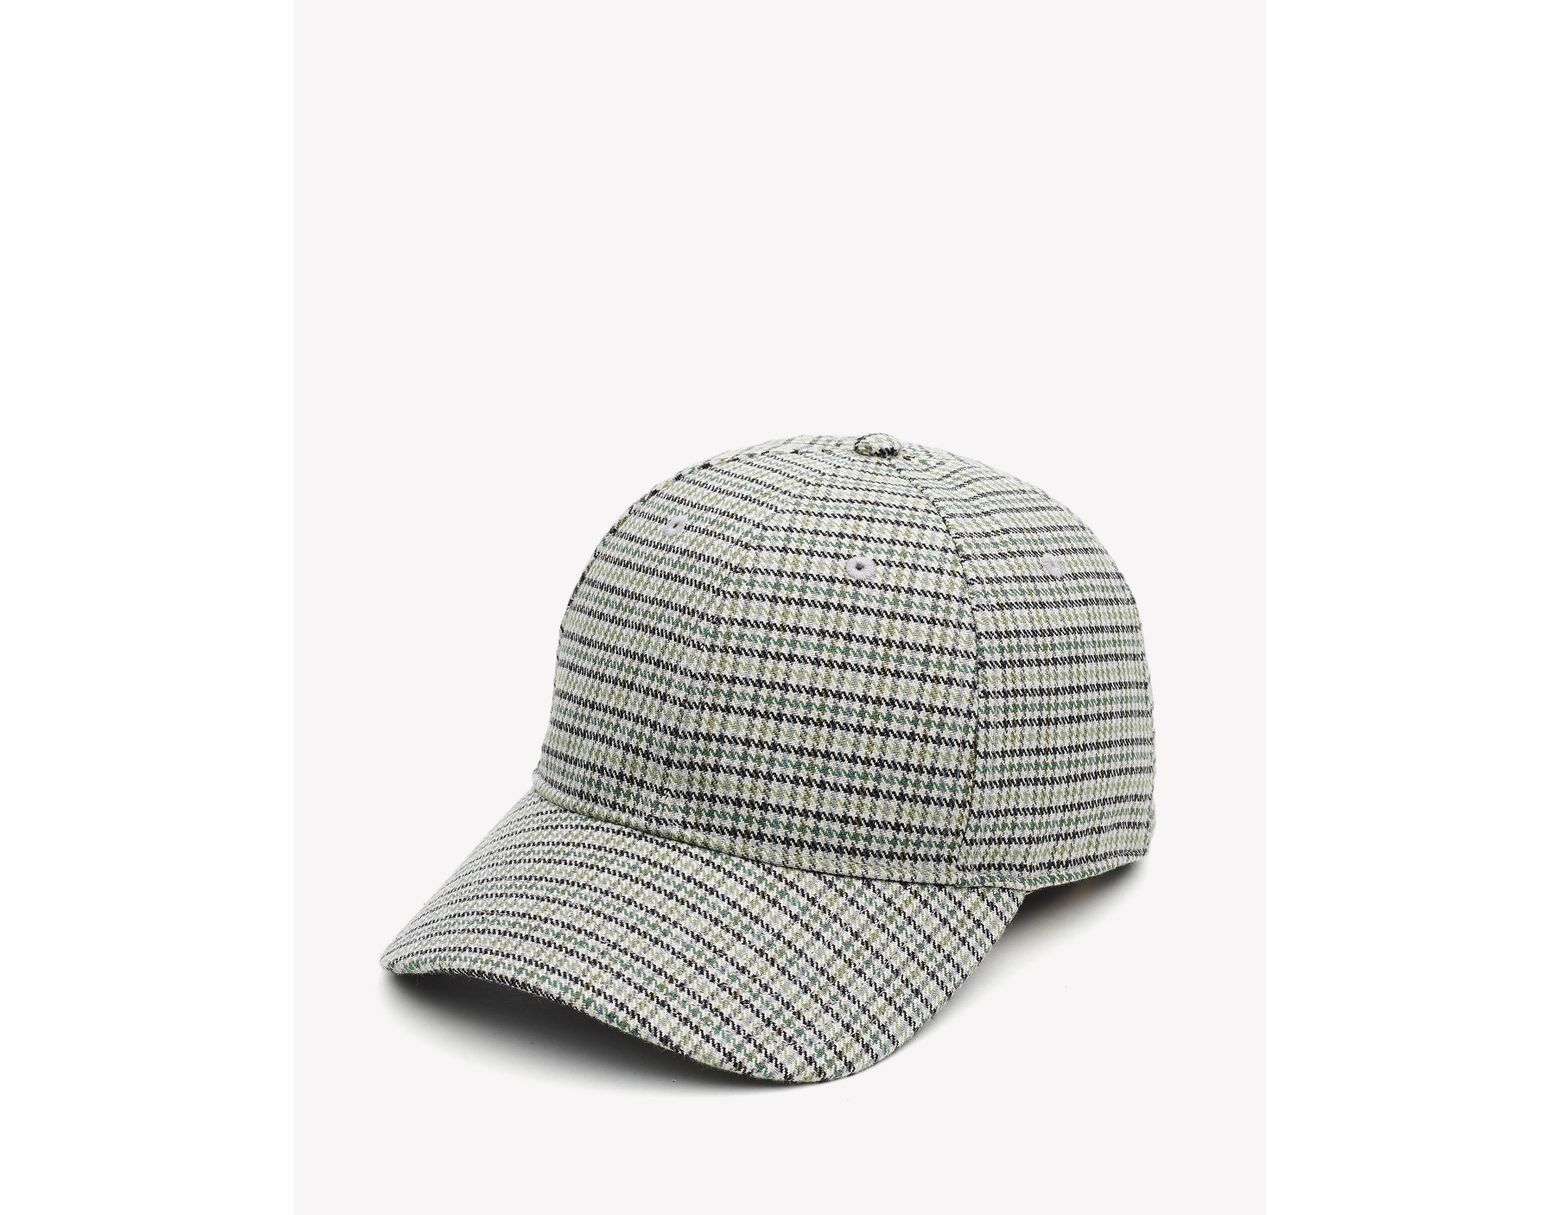 Rag & Bone Archie Baseball Cap in Gray for Men - Lyst